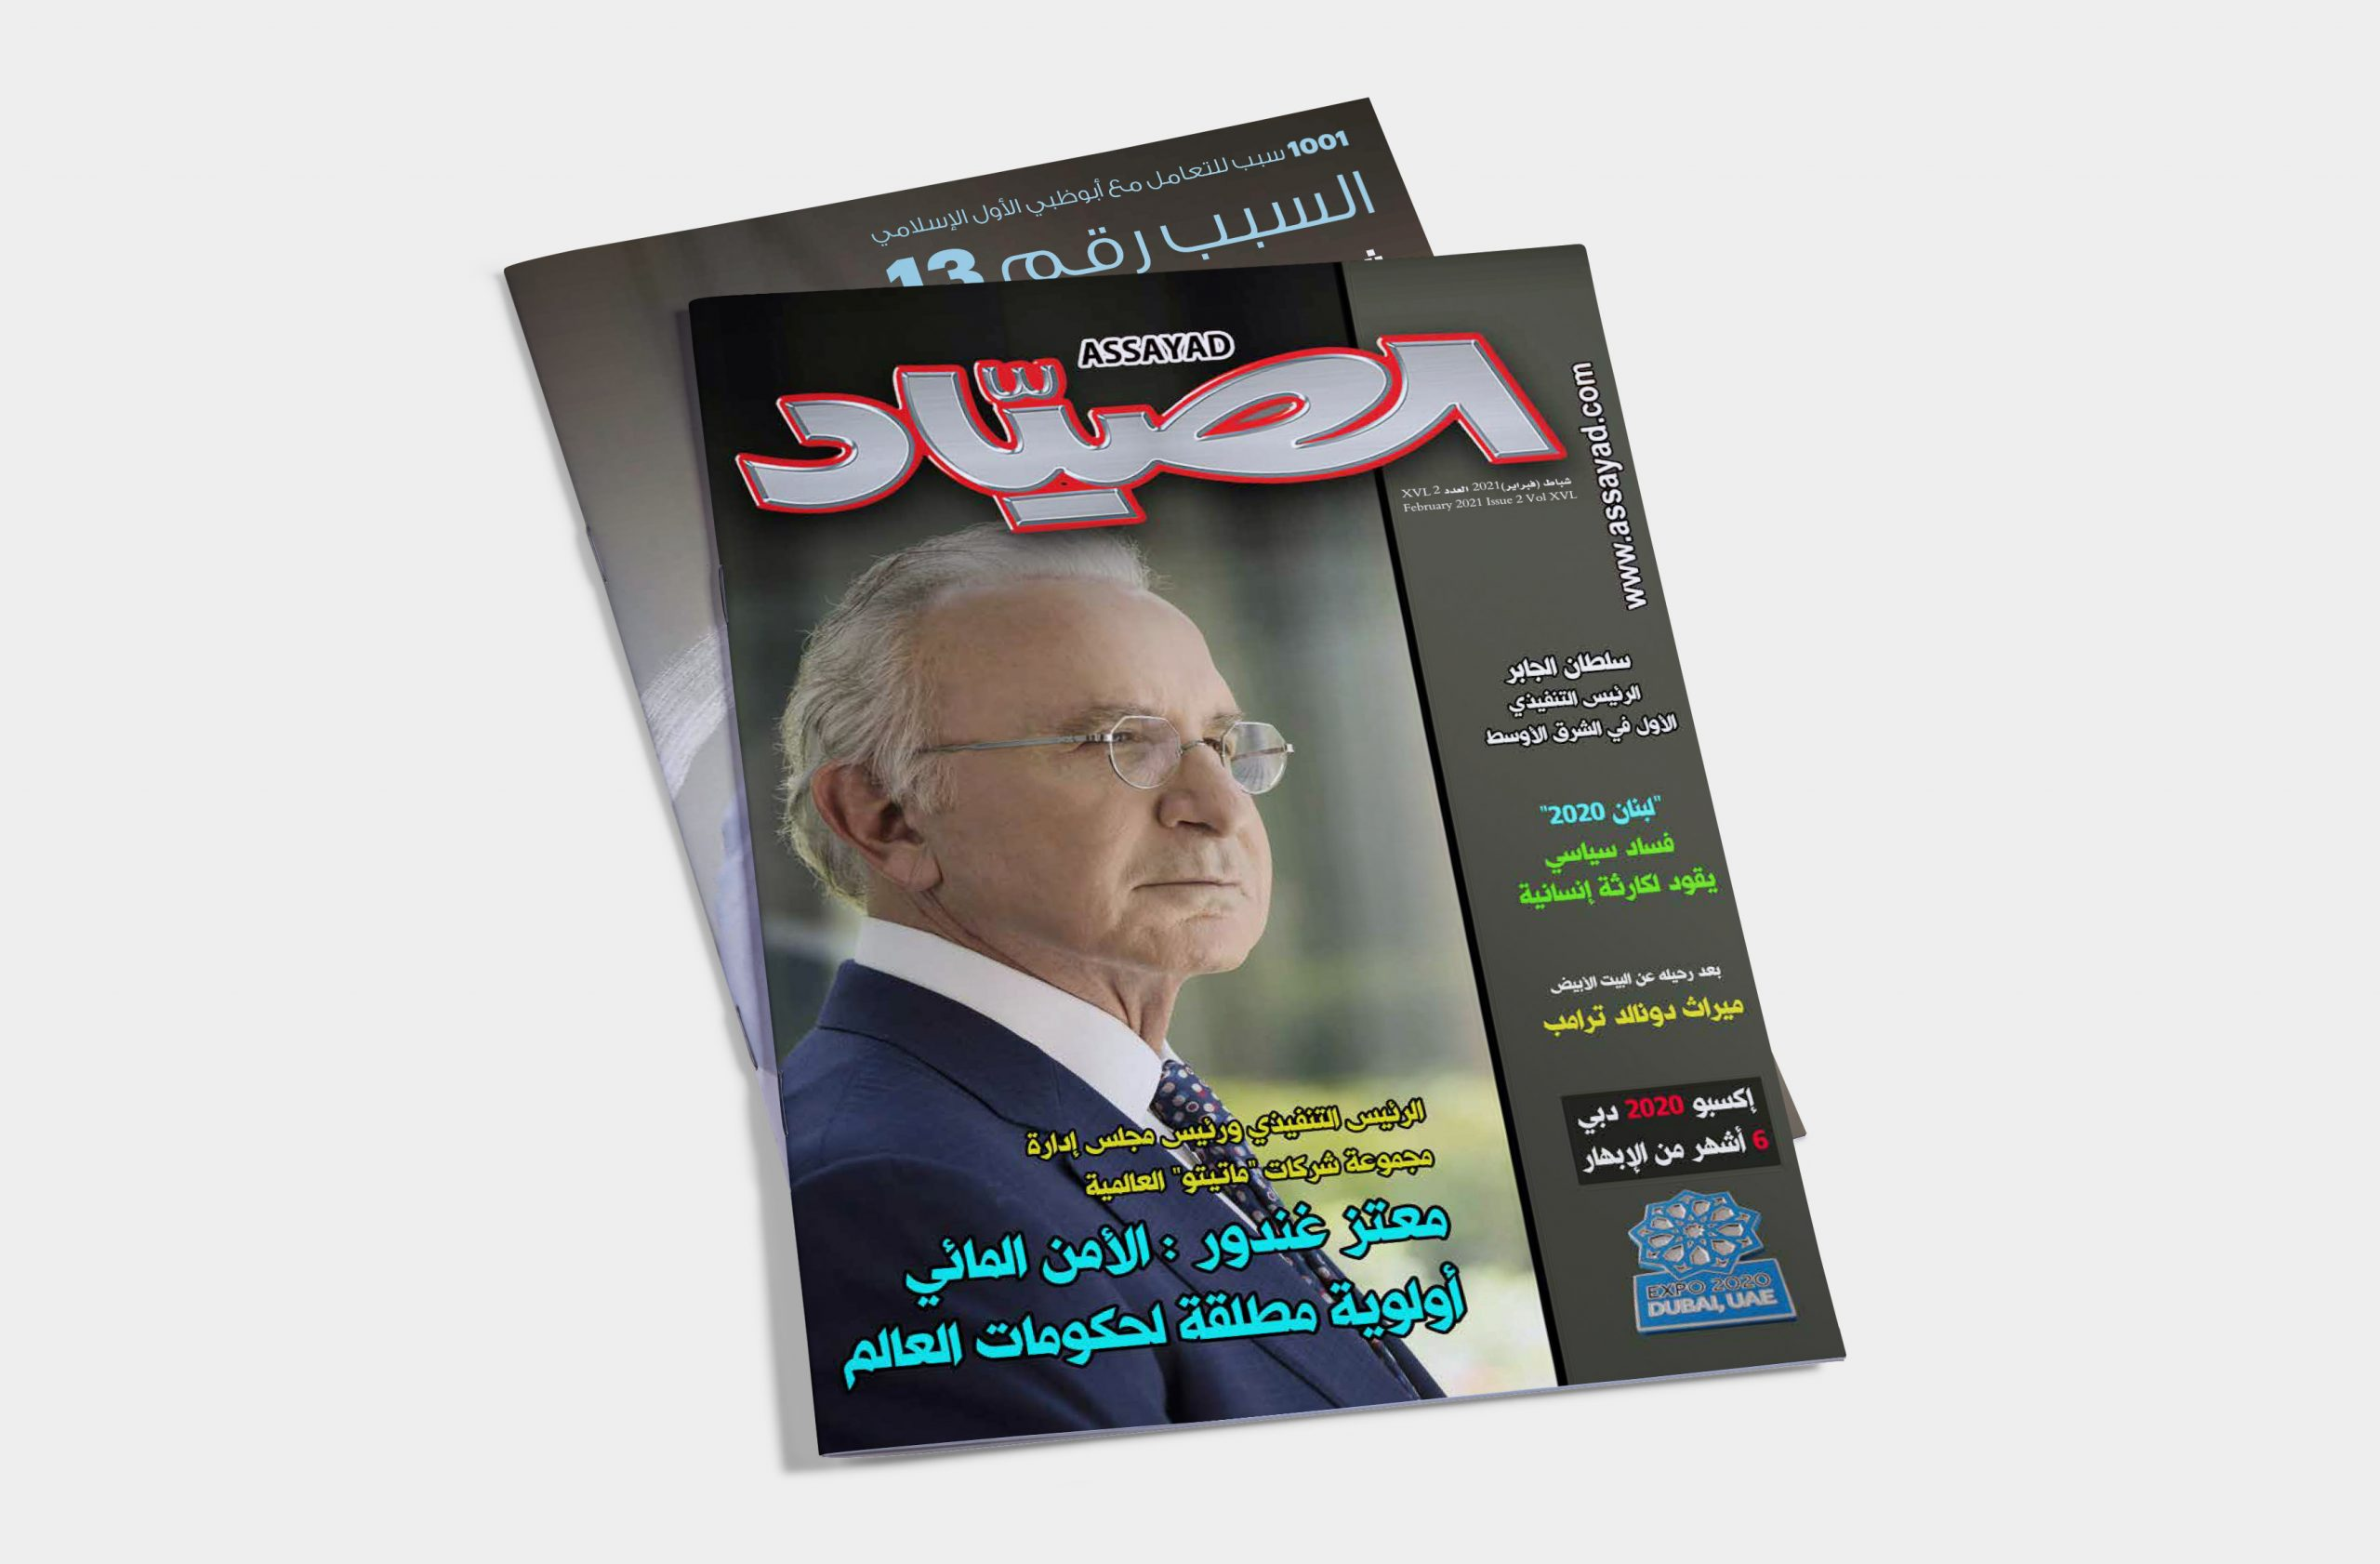 Assayad magazine exclusive interview with Metito chairman and CEO, Mutaz Ghandour.